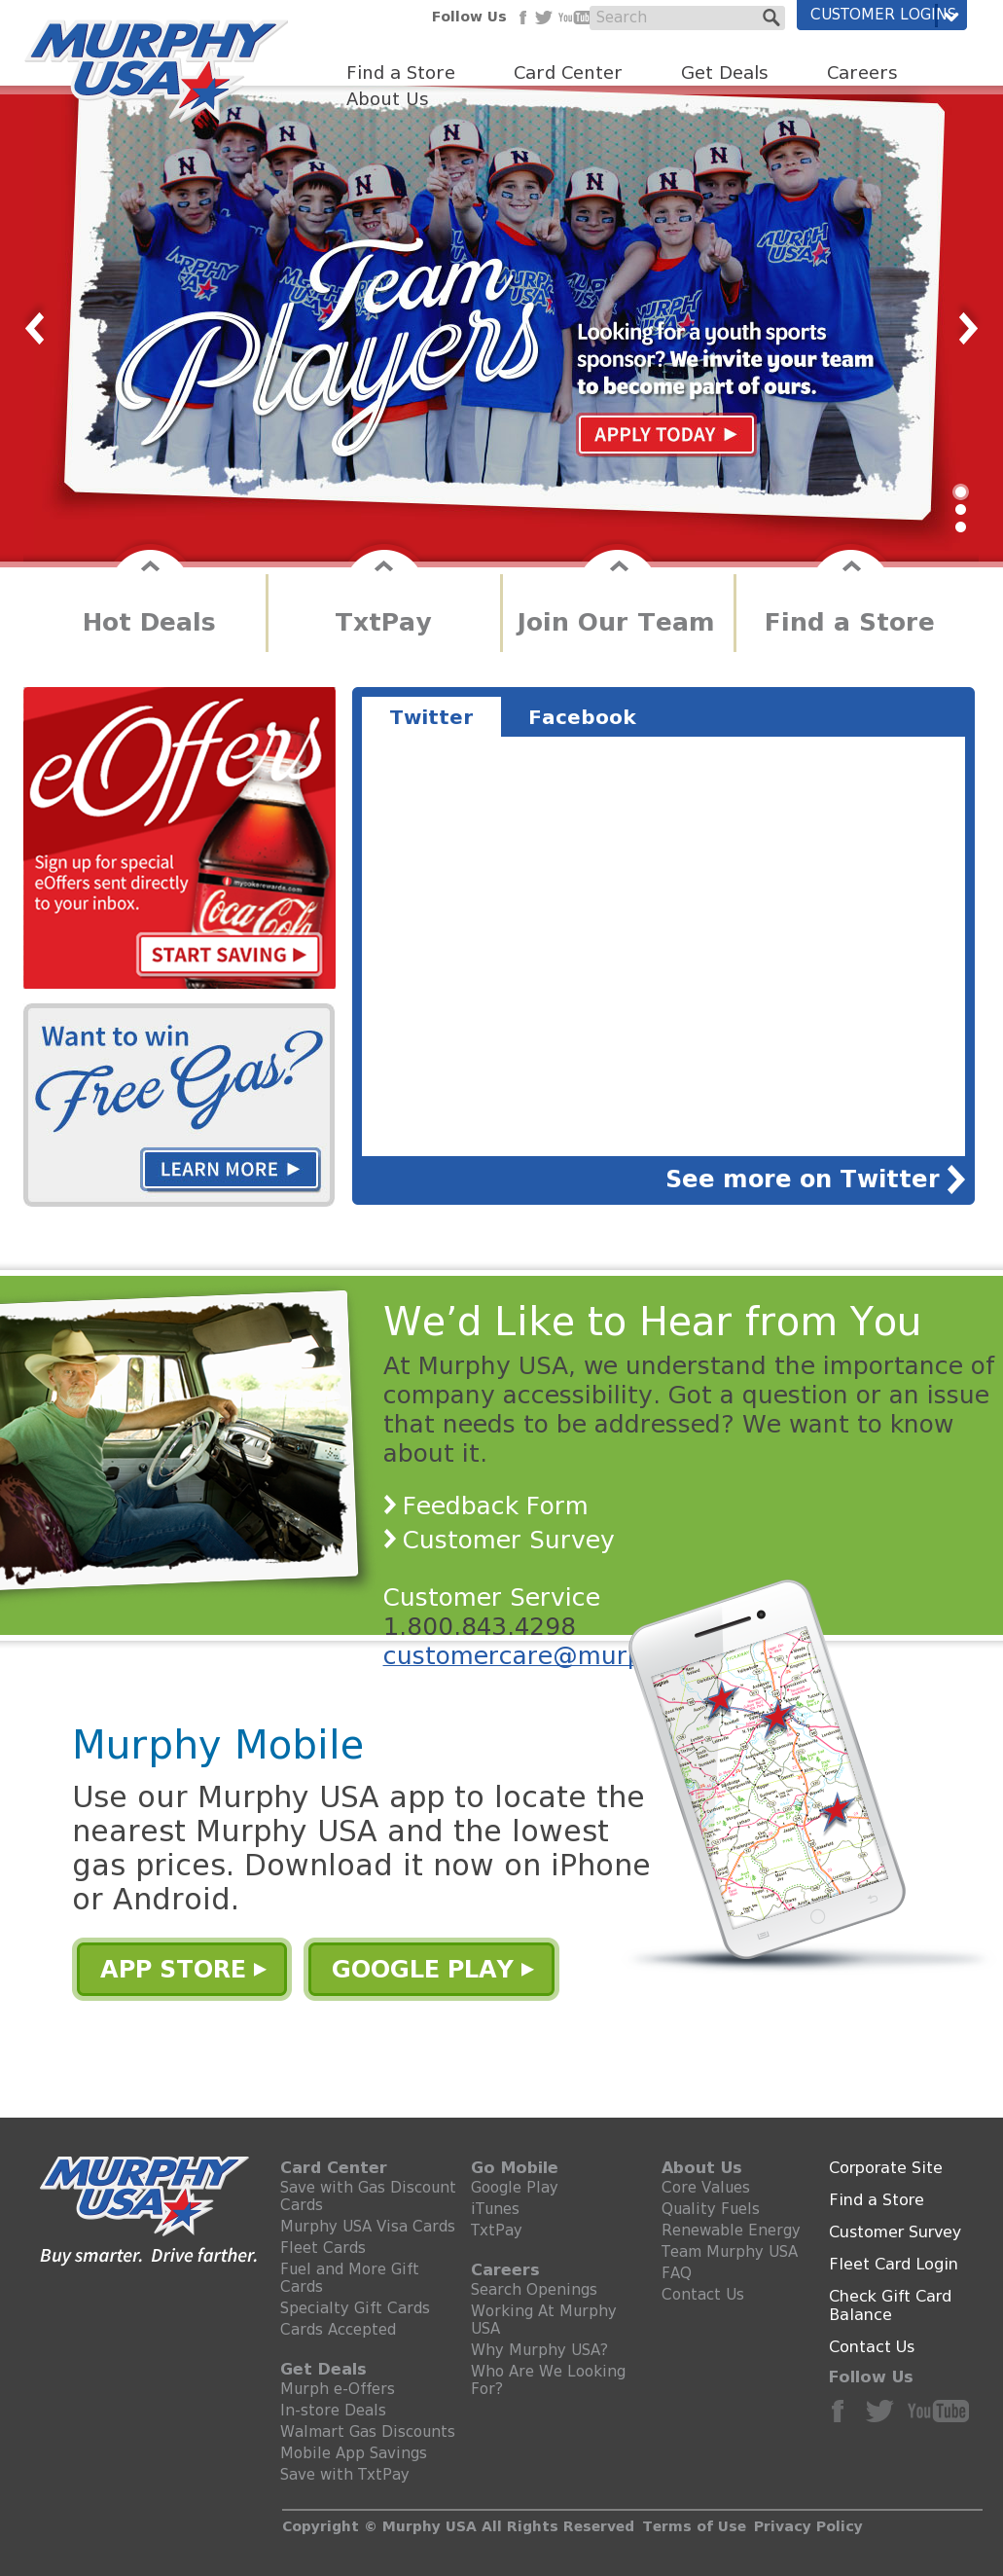 Murphy Visa Card >> Murphy Usa Competitors Revenue And Employees Owler Company Profile